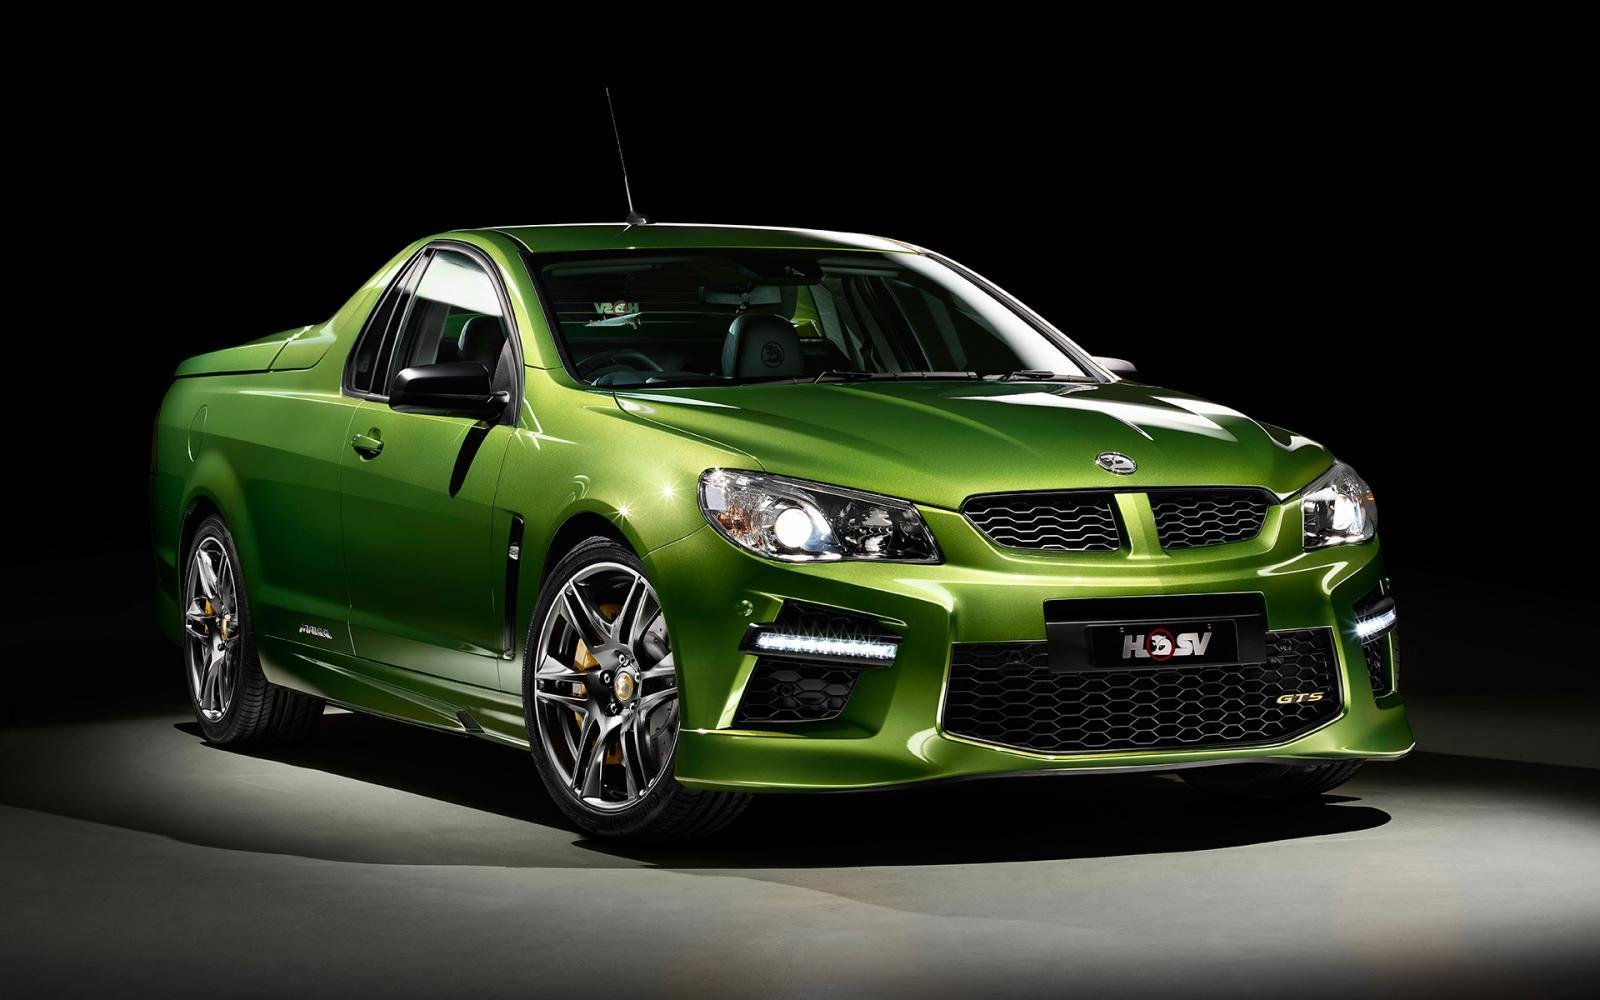 New Hsv Gts Maloo On Sale In Australia Arrives November Performancedrive On This Month